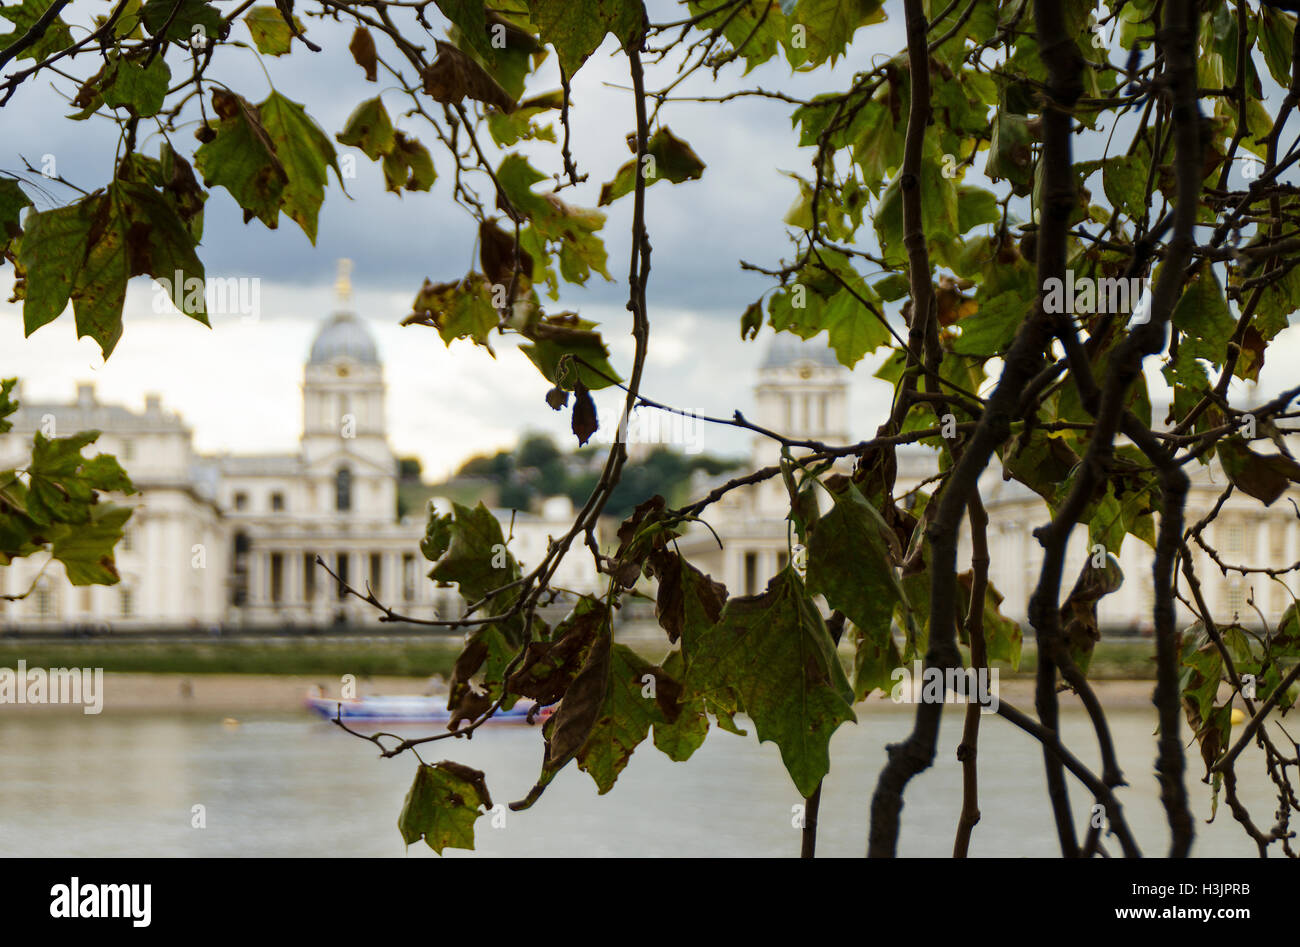 Royal Naval College, Greenwich, London - Stock Image